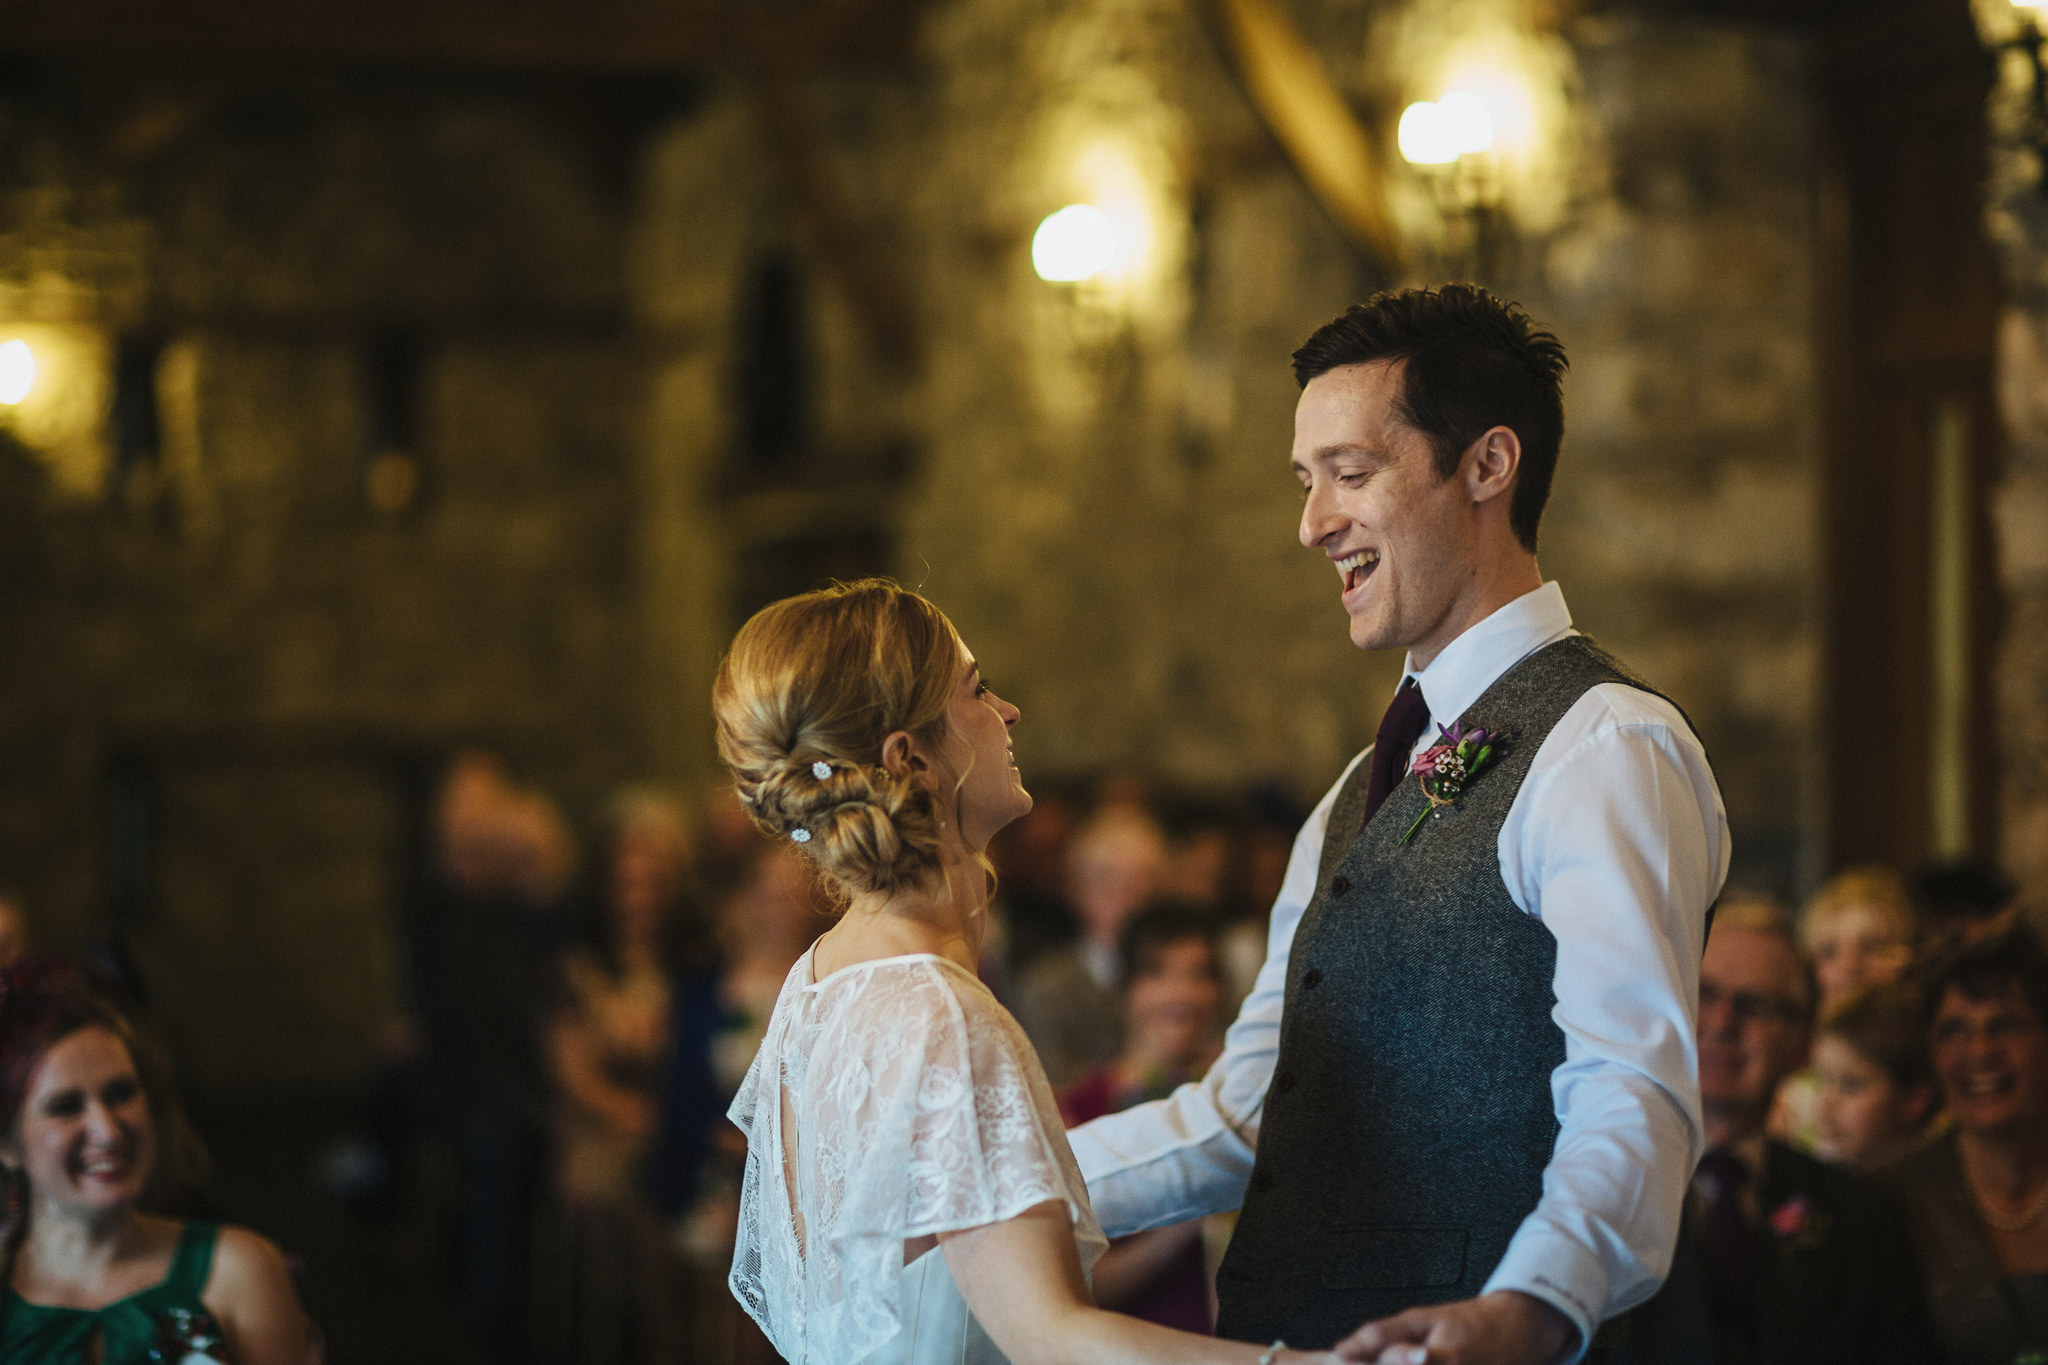 plas-isaf-corwen-north wales wedding-photography-photographer-91032